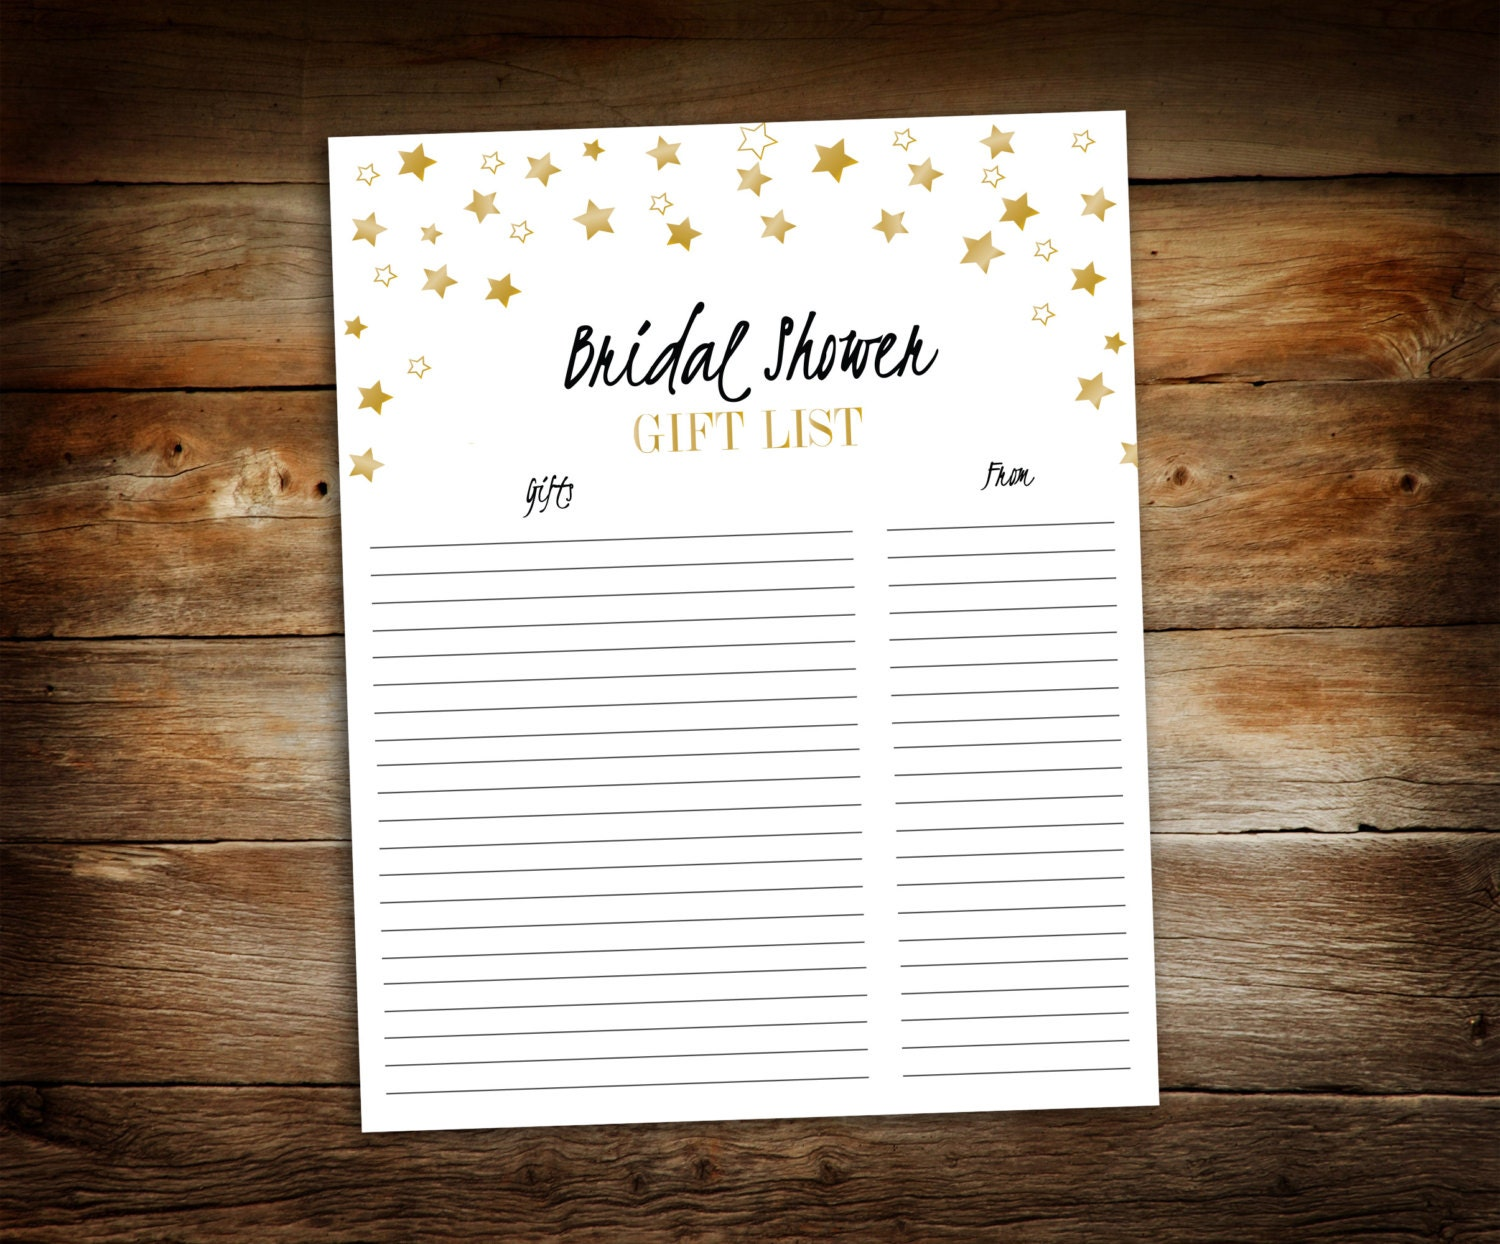 The Wedding Gift List: Bridal Shower Gift List List Of Received Gifts Wedding